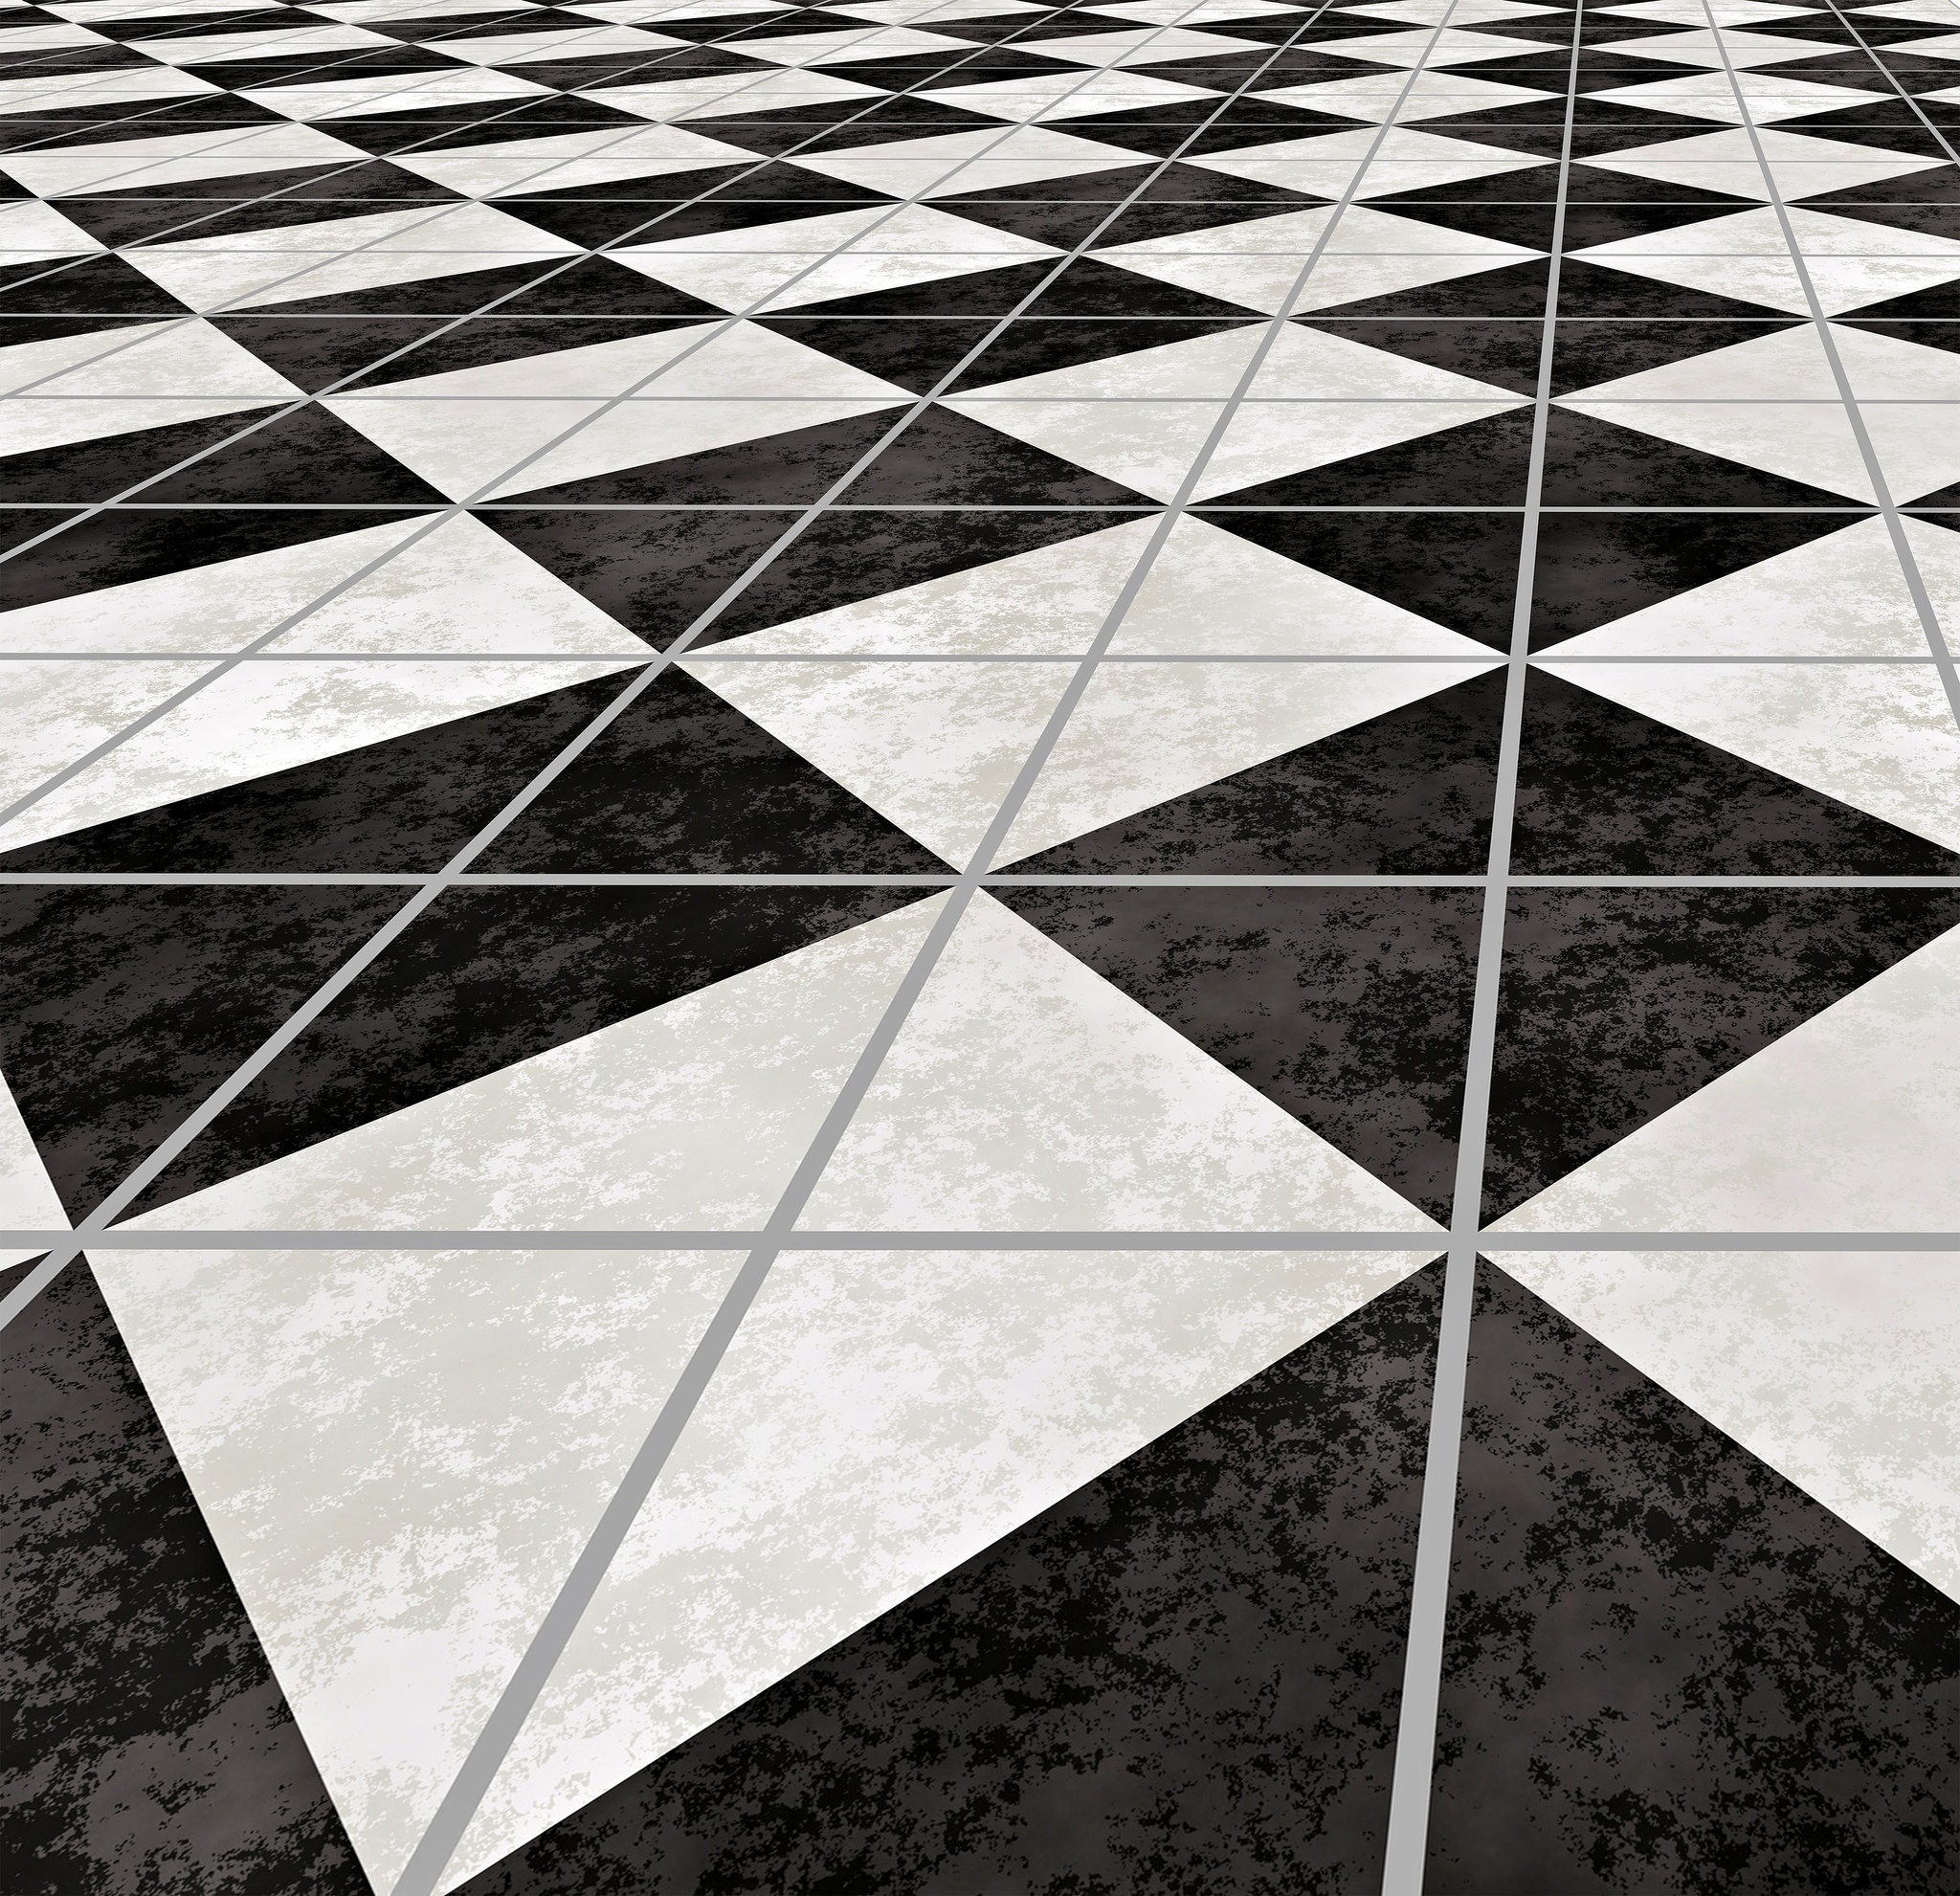 large image of checkered marble floor going off into the distance